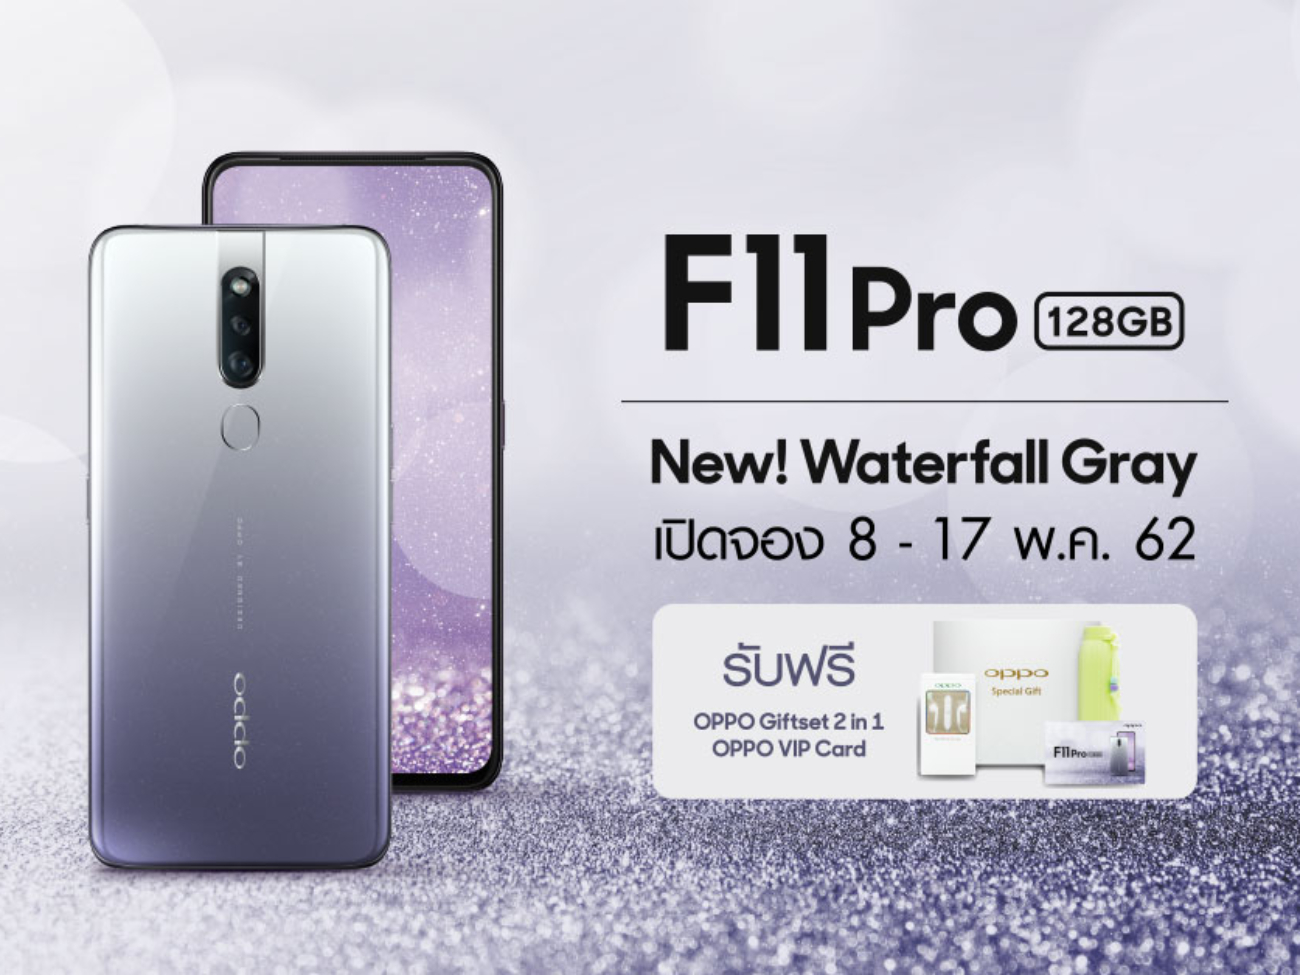 OPPO-F11-Pro-Waterfall-Grey-Color-002